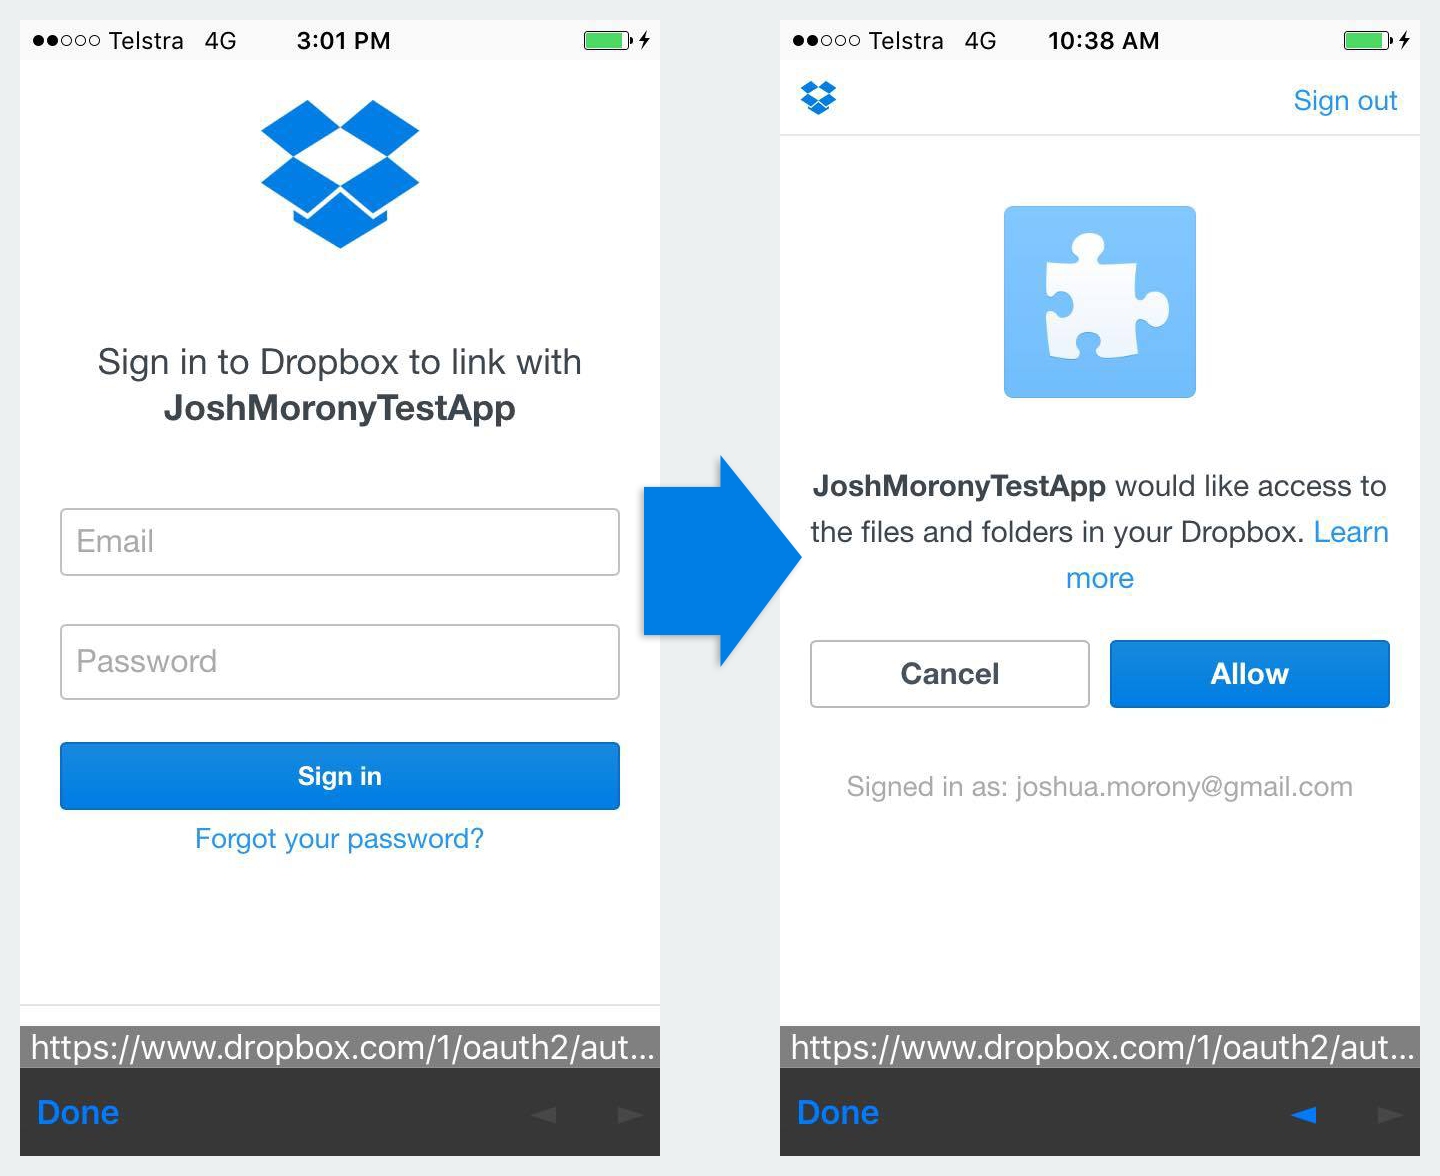 Dropbox OAuth Flow